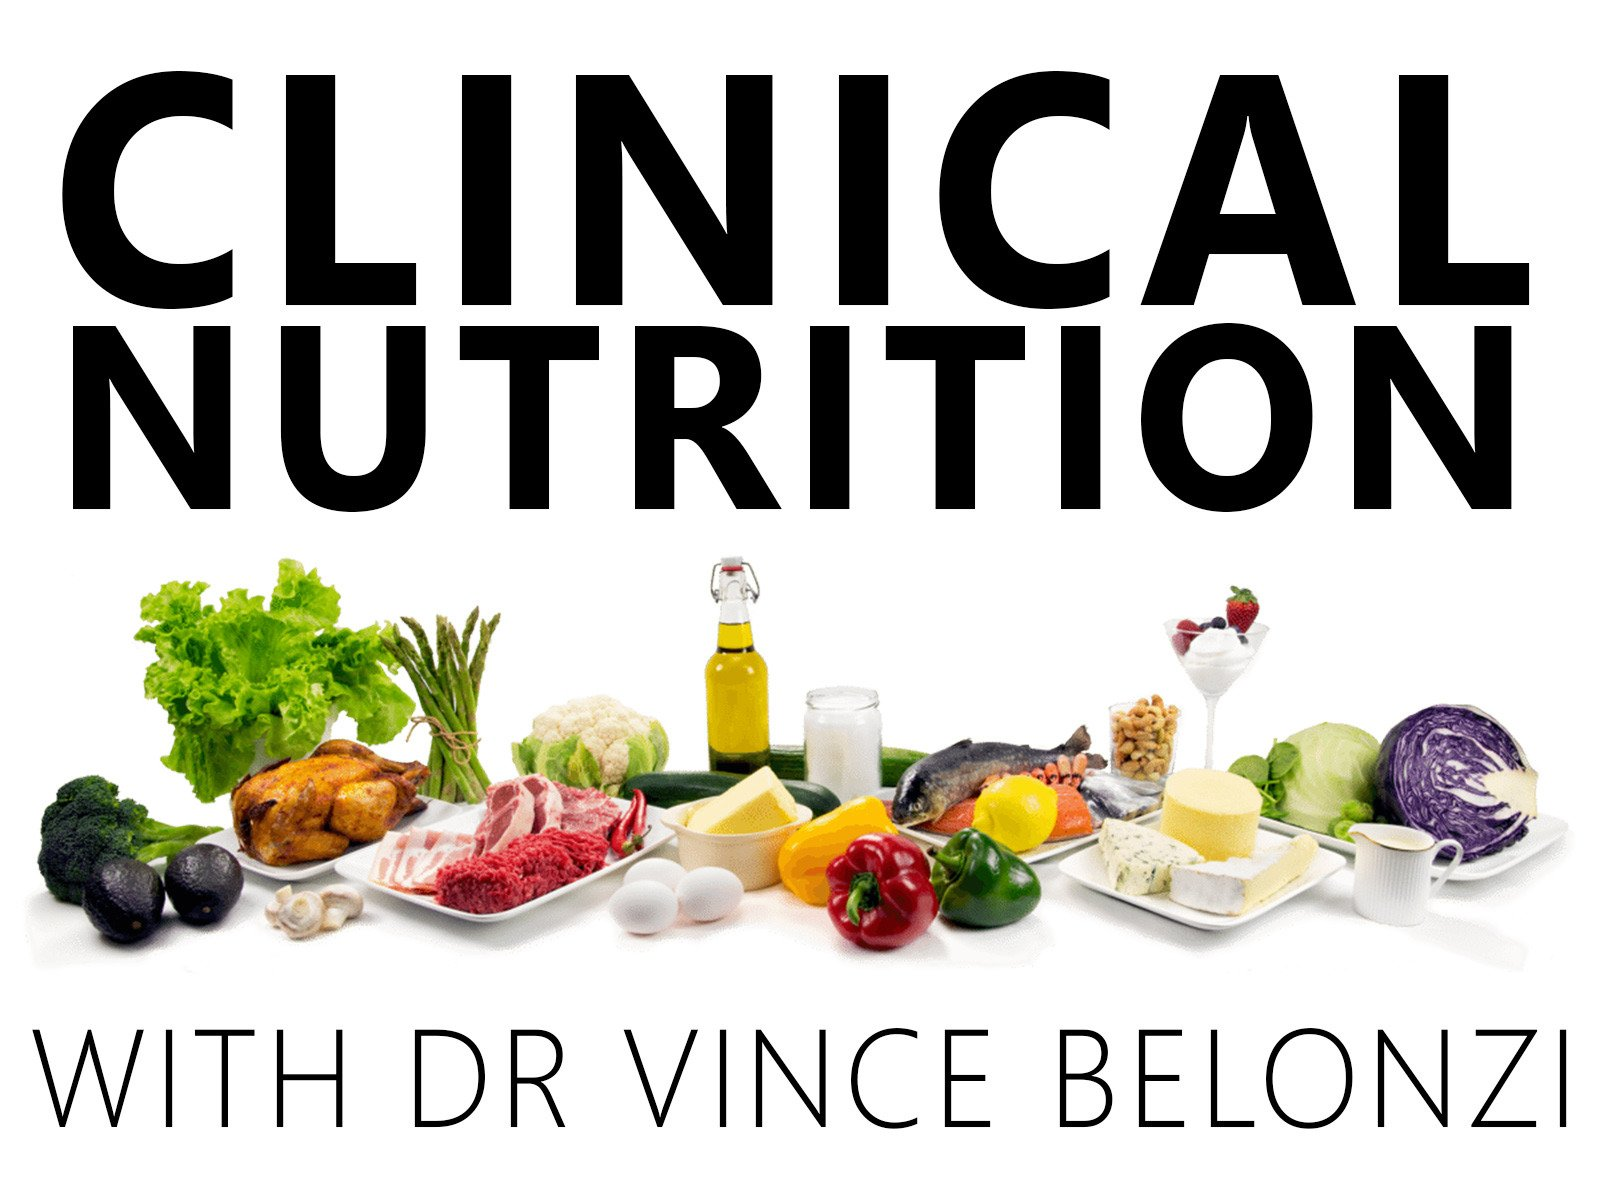 Clinical Nutrition With Dr. Vince Belonzi - Season 1